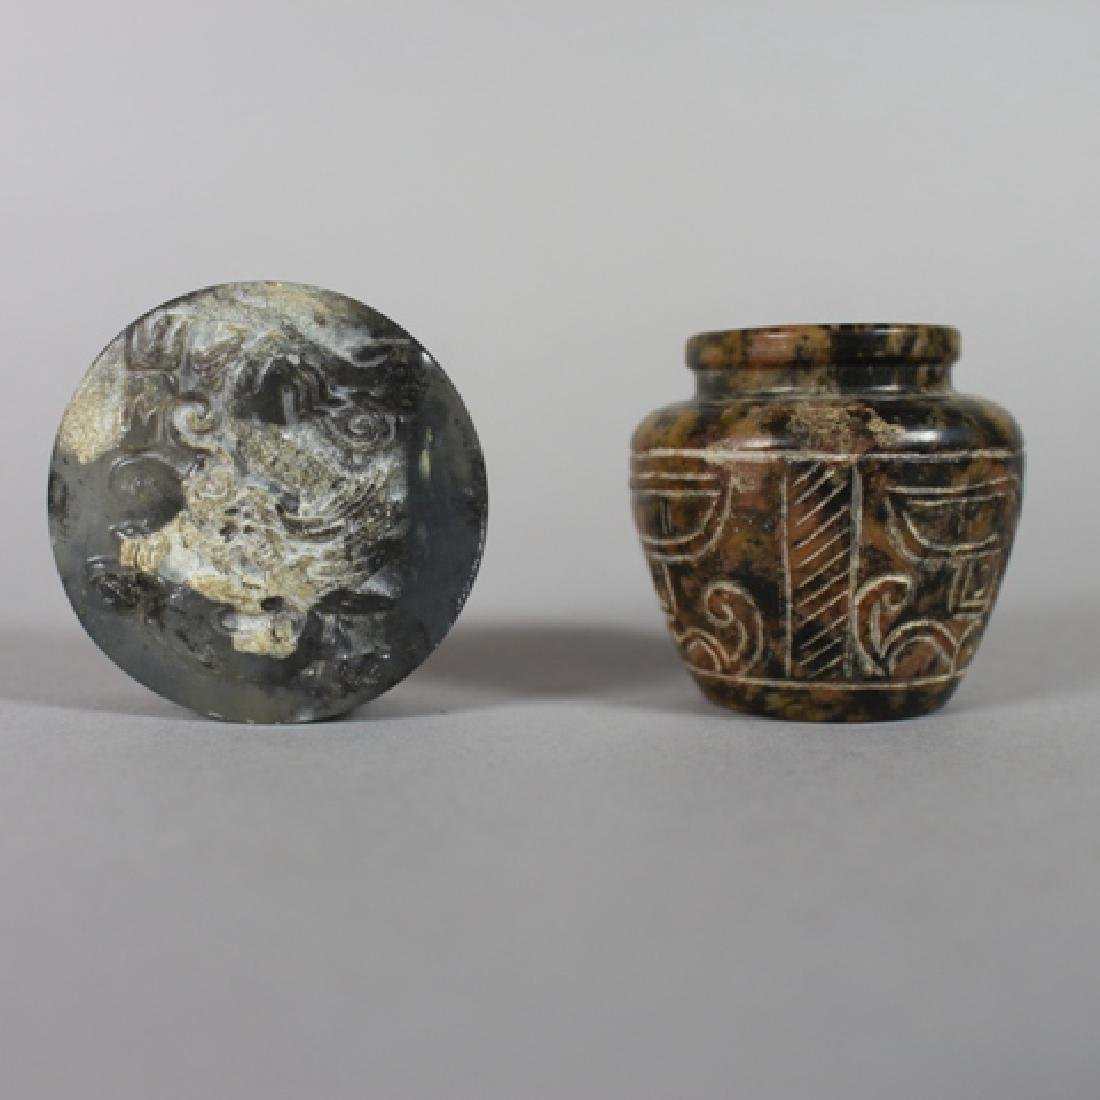 Chinese Hardstone Seal and Archaic Style Small Jar